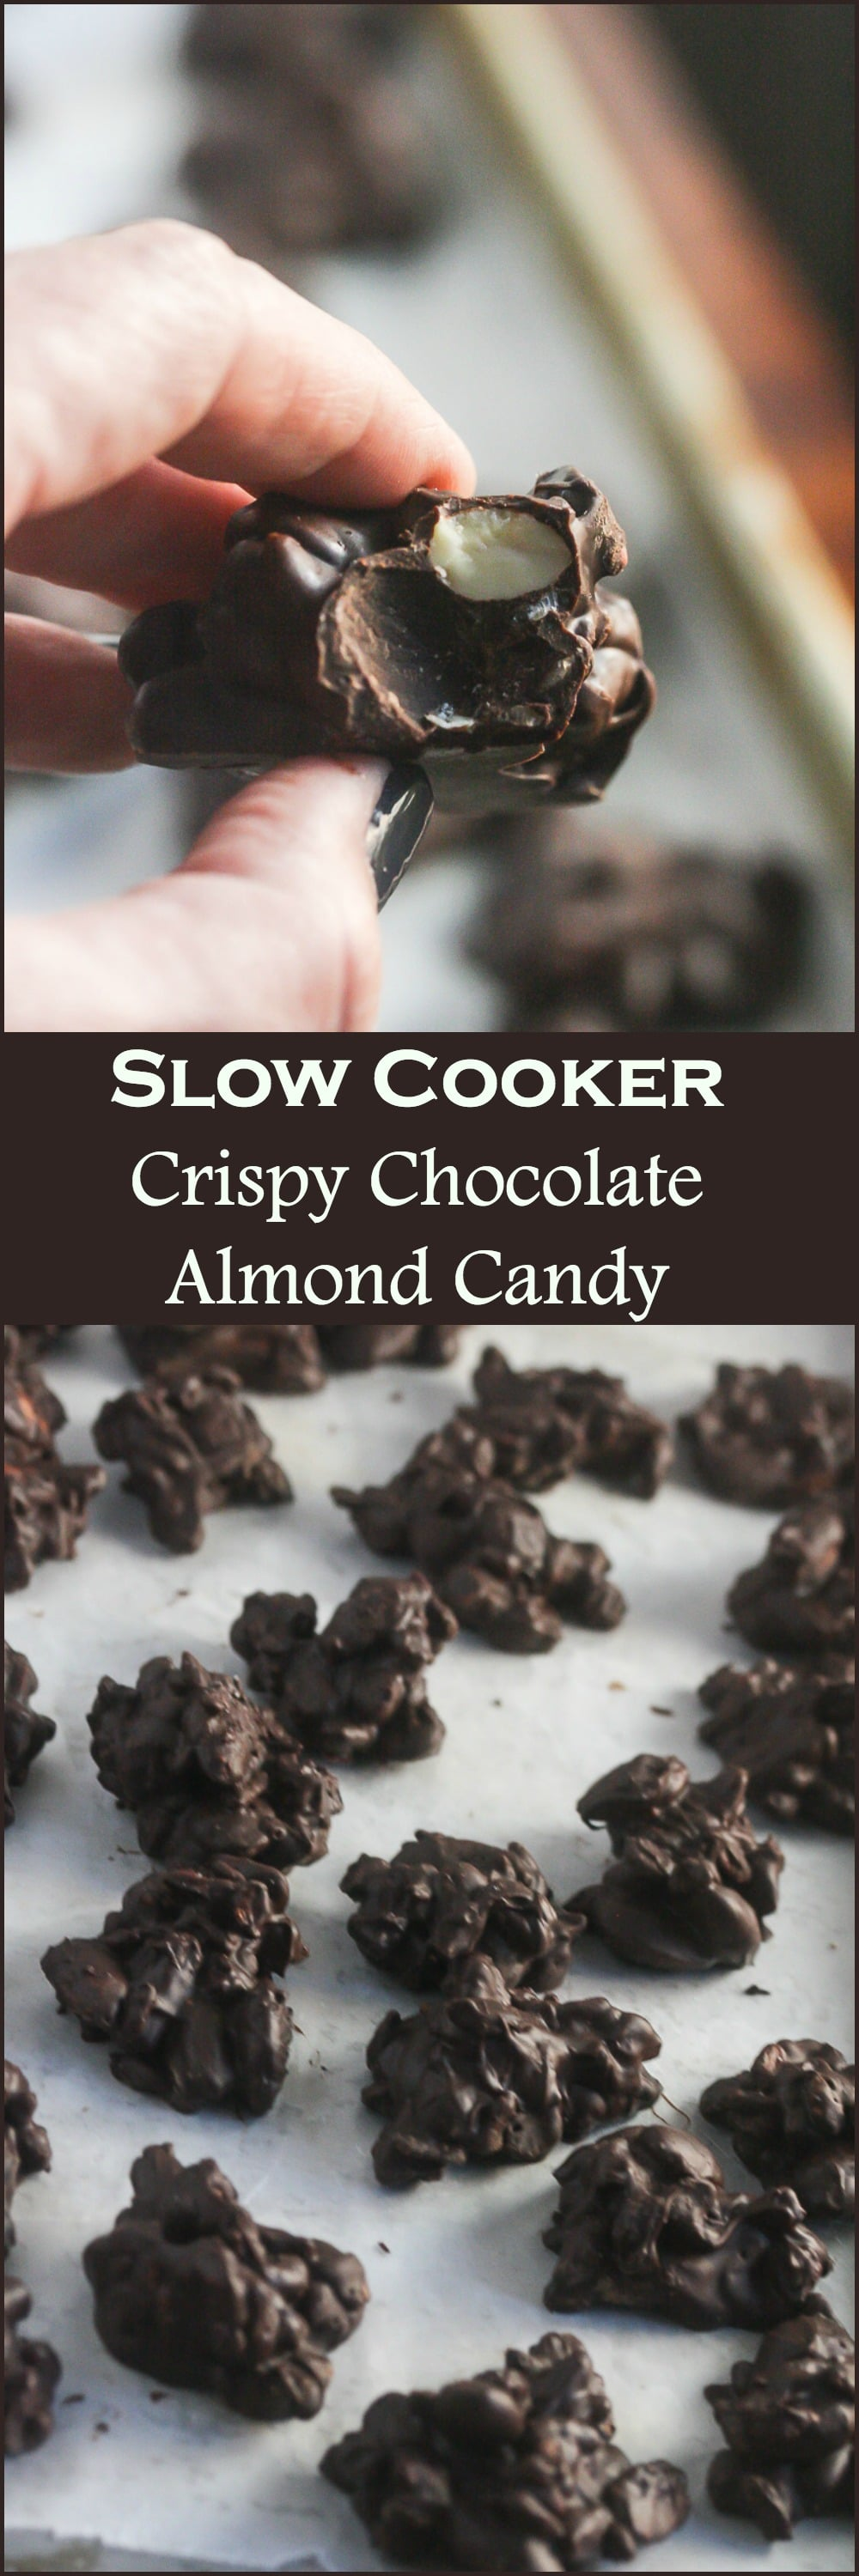 Slow Cooker Crispy Chocolate Almond Candy from Lauren Kelly Nutrition has just 4 ingredients and they are healthy!